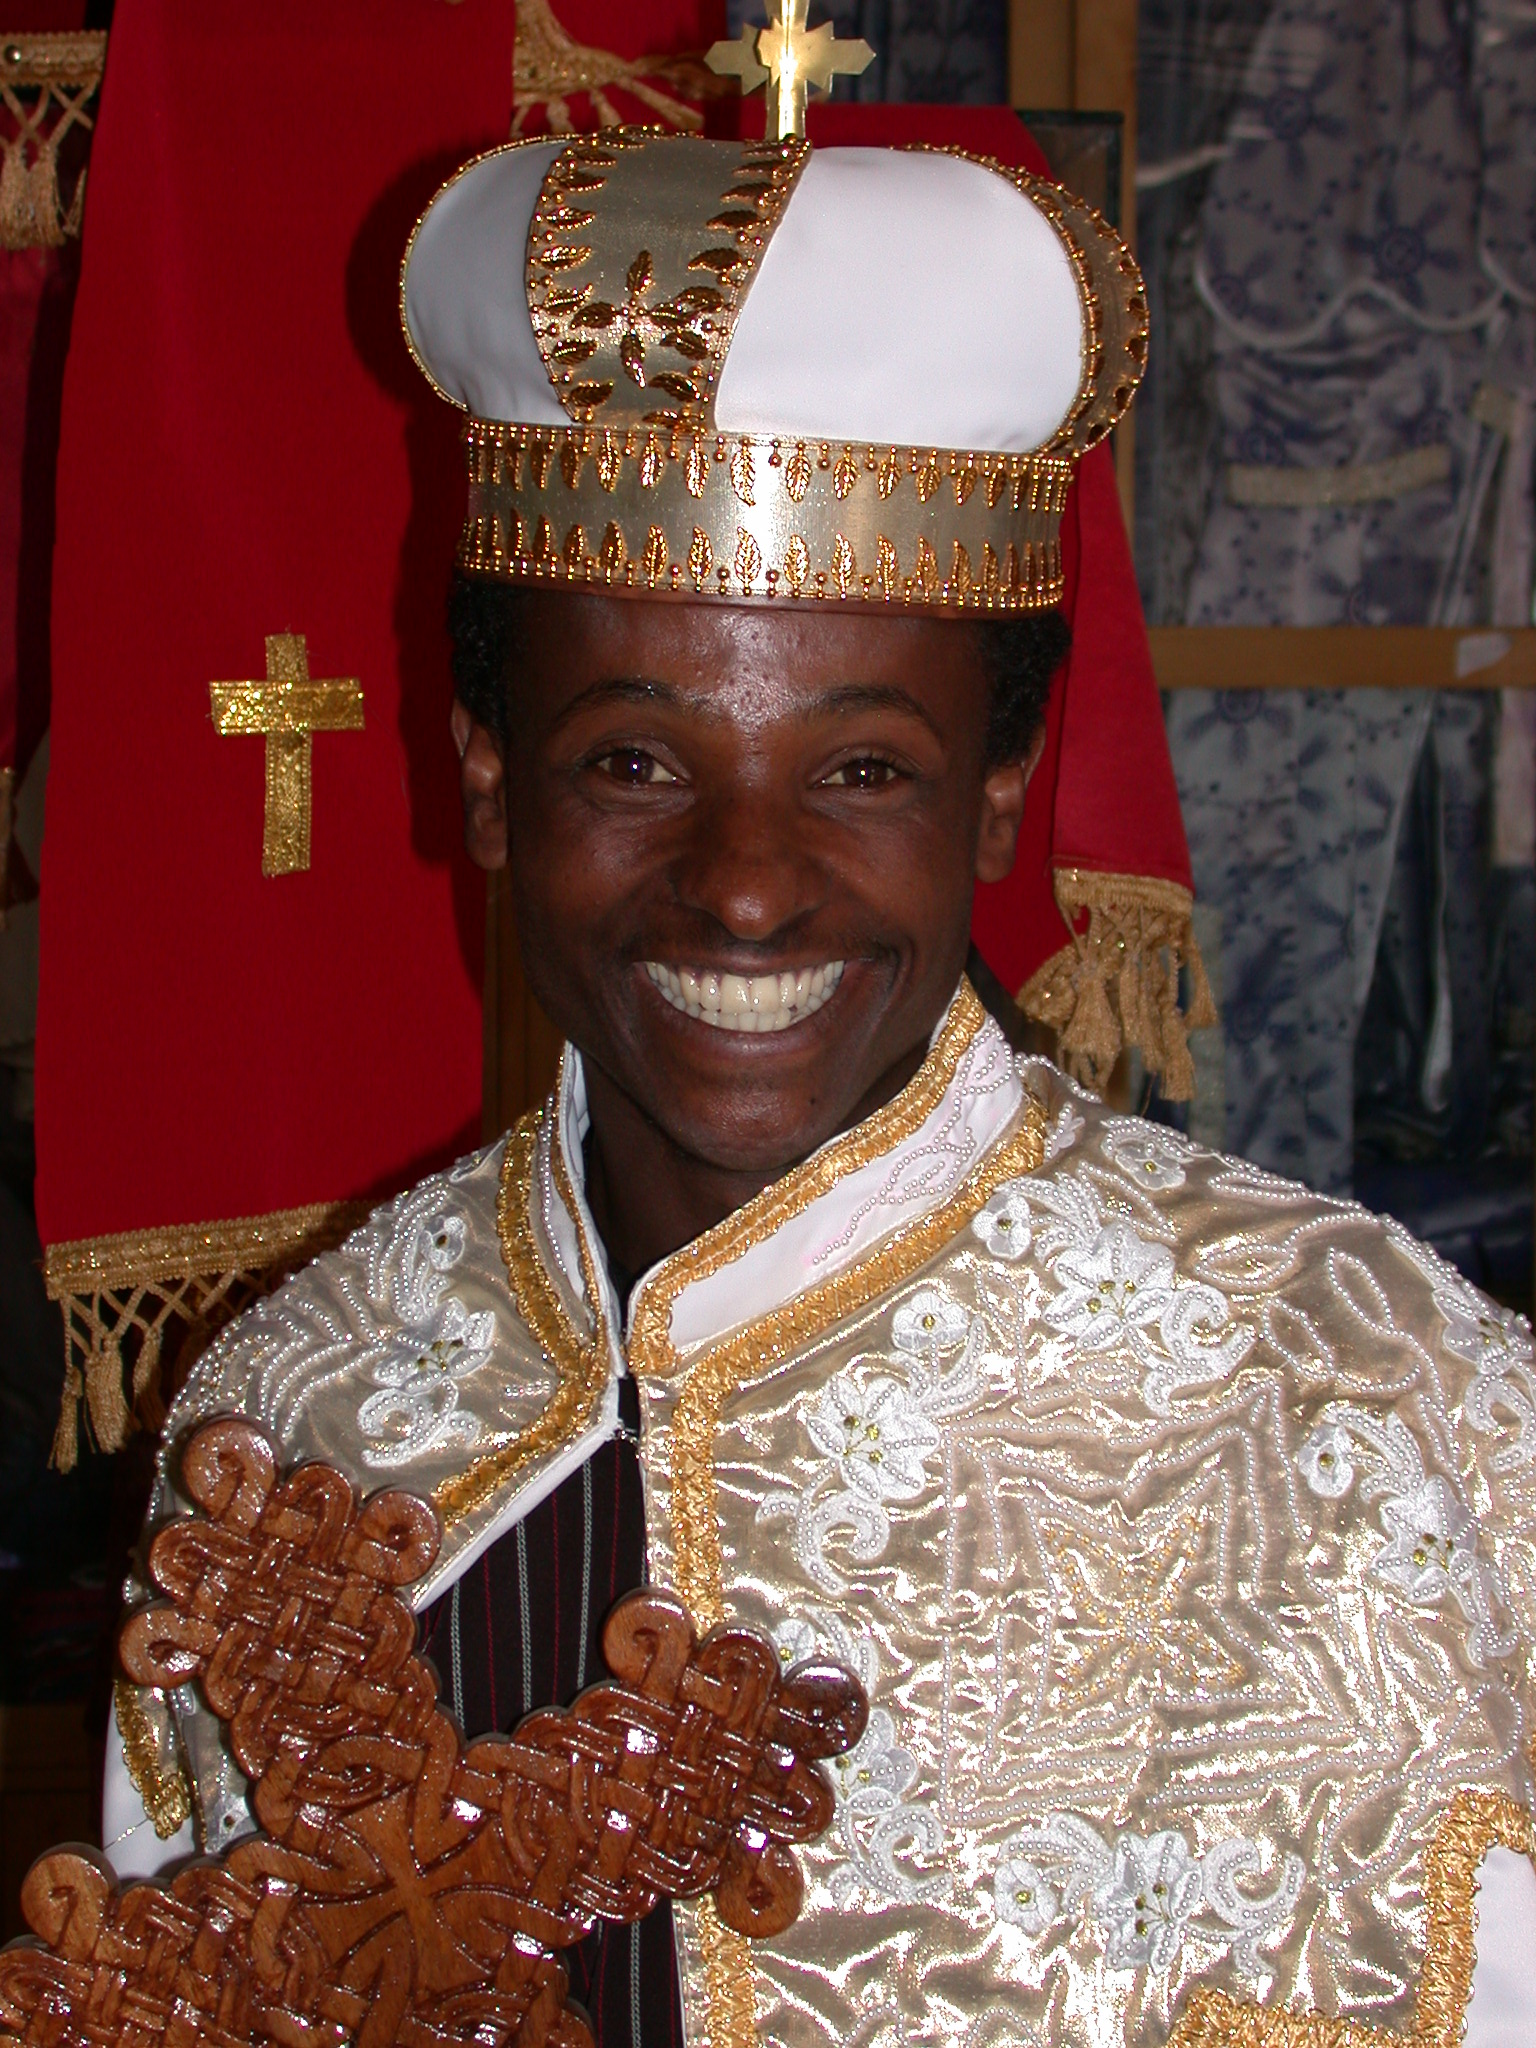 cat 13&paged 6 ethiopian wedding dress Shop Employee With Cross and Guy off Street in Wedding Gowns at Church Shop